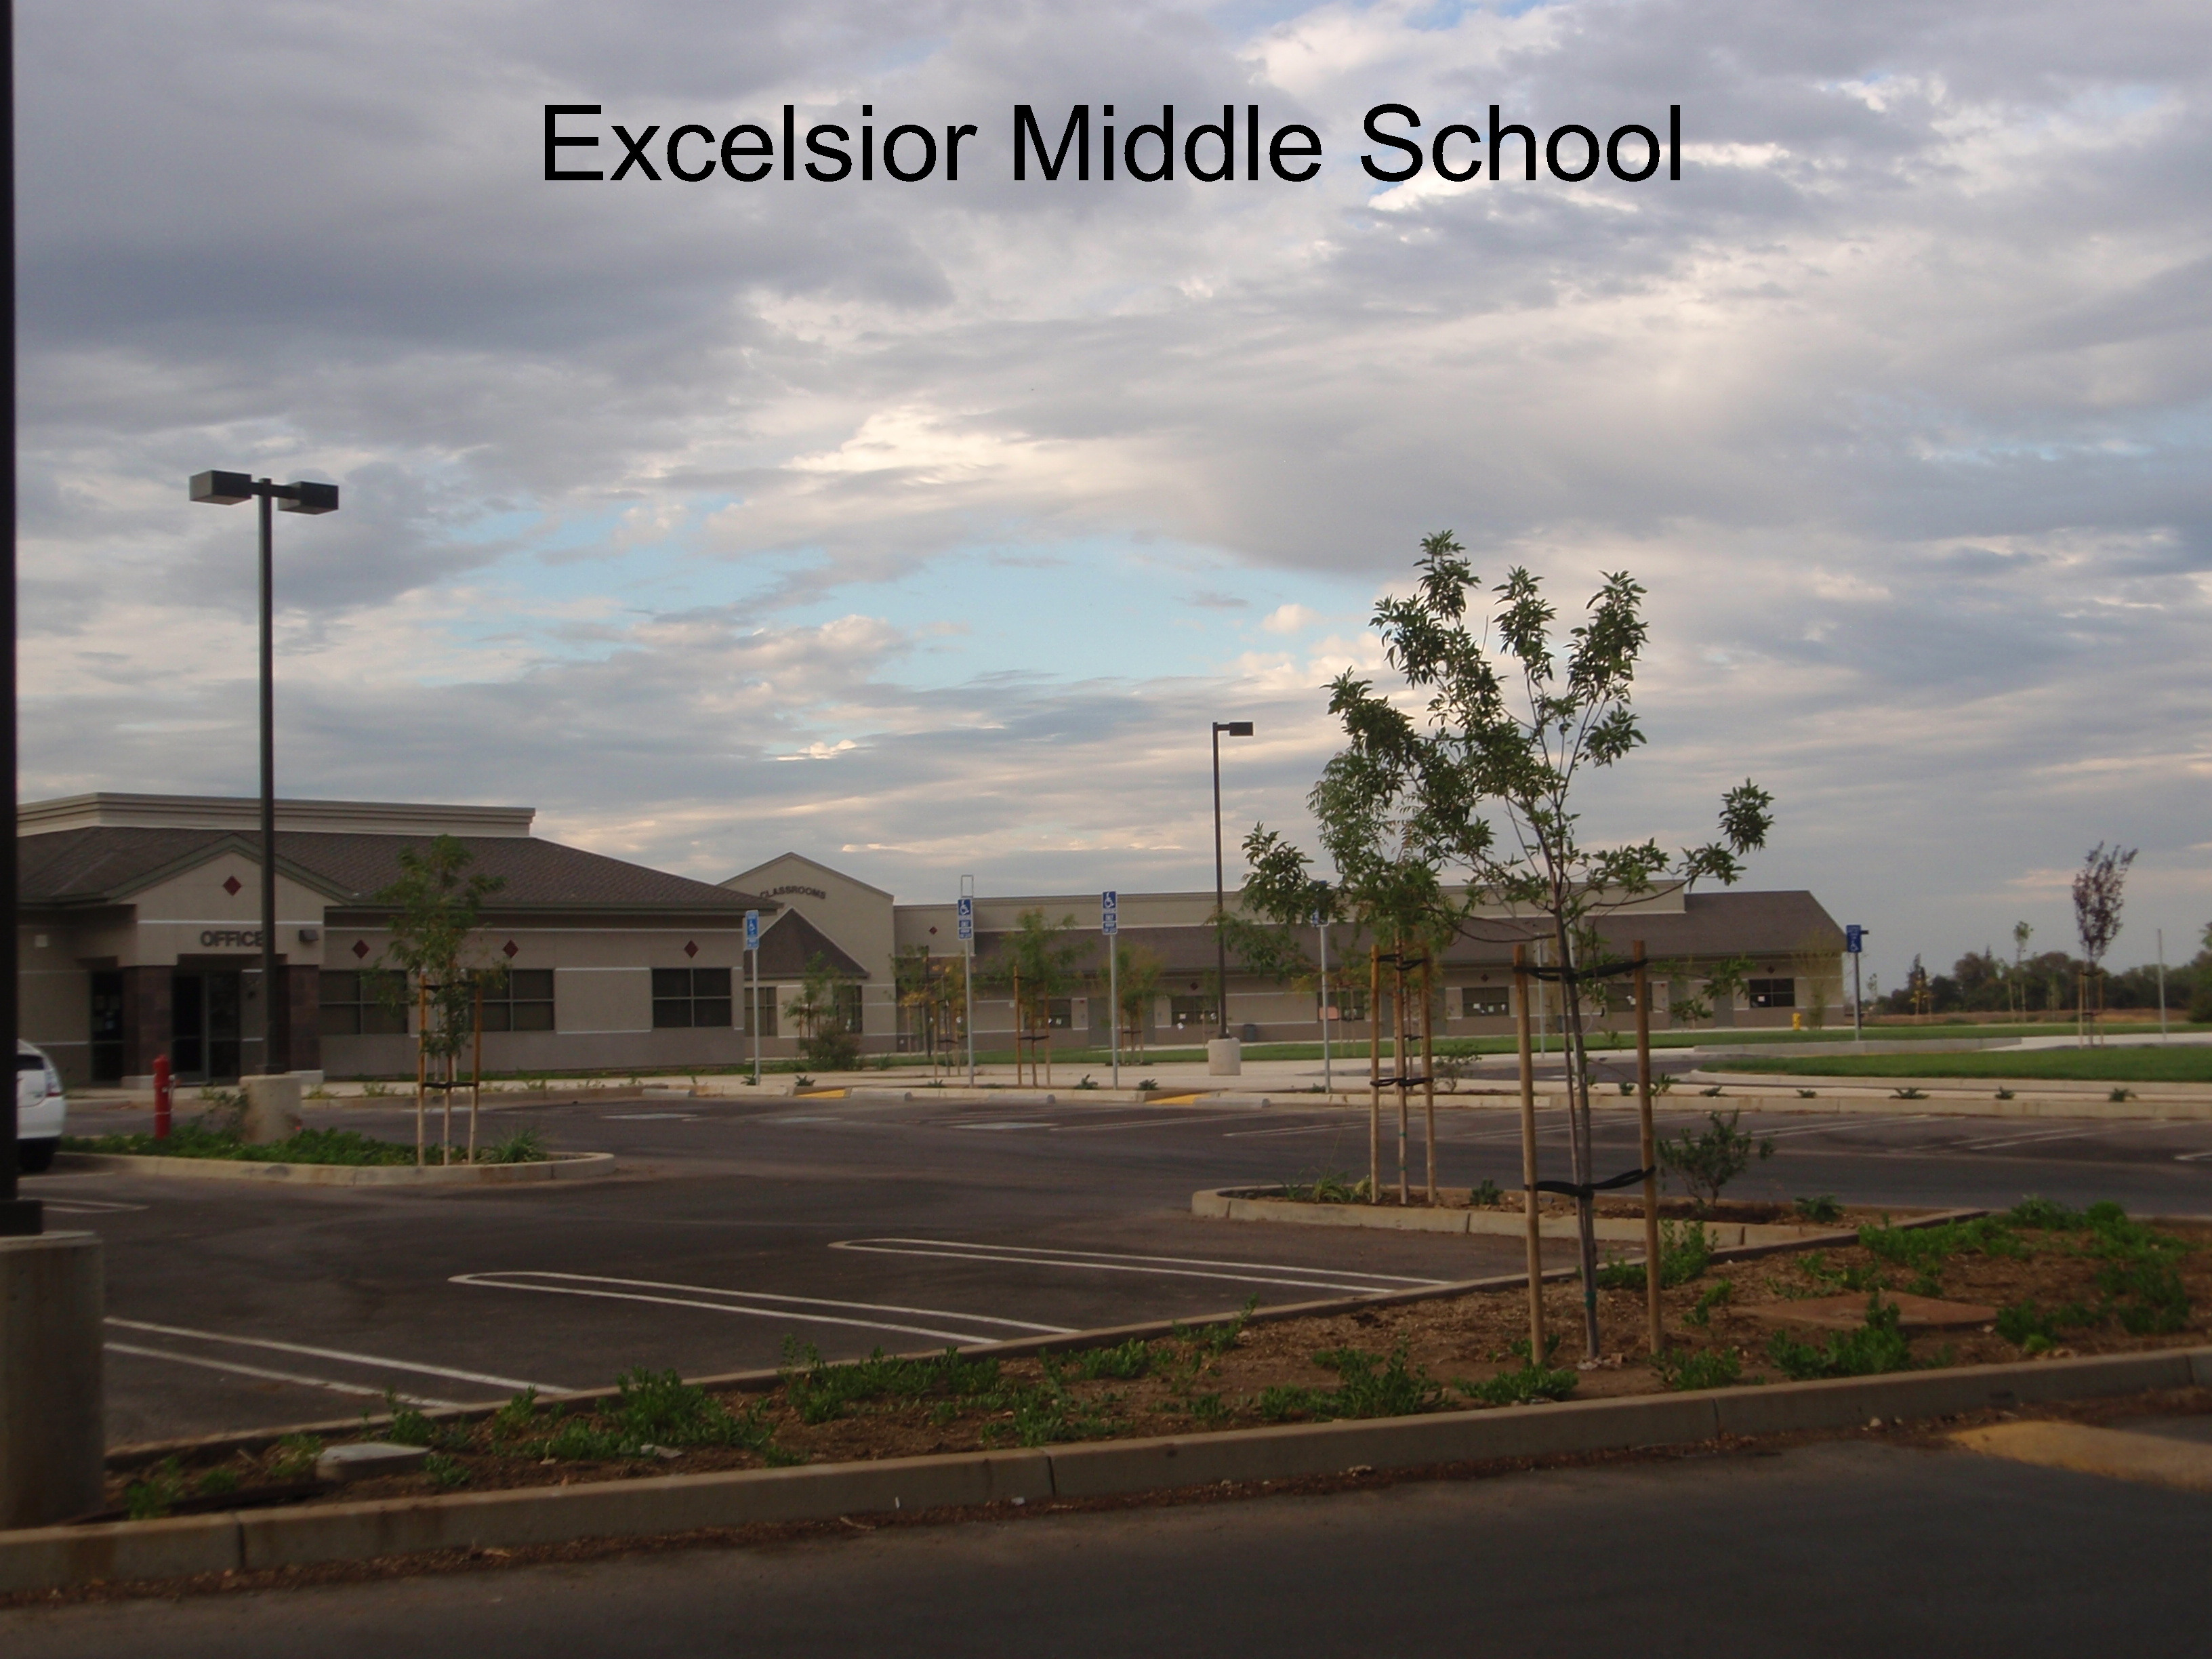 Excelsior Middle School